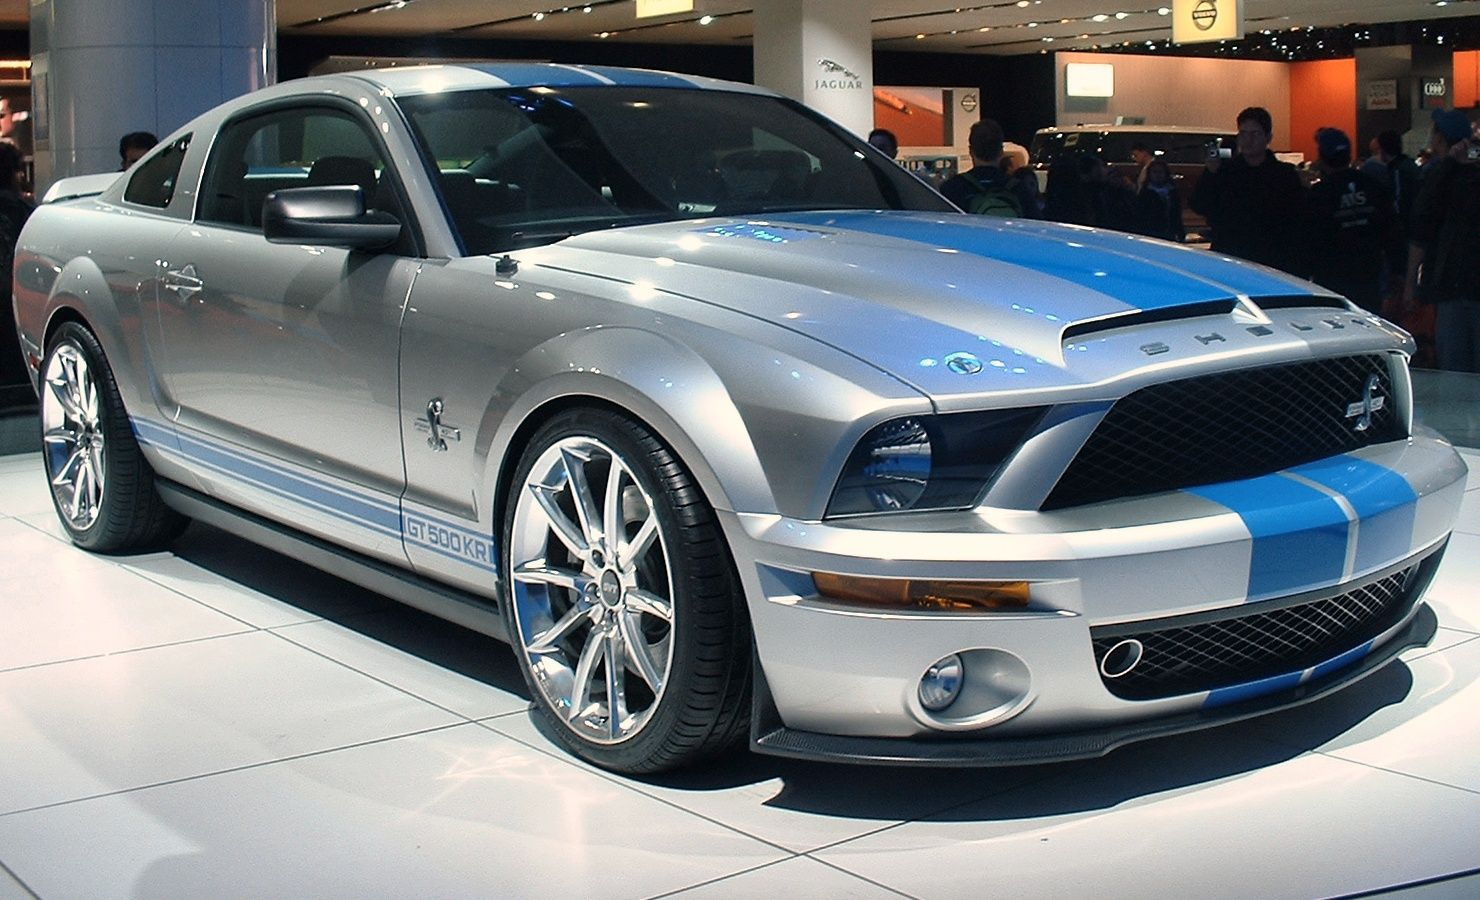 Best 25 2013 shelby gt500 ideas on pinterest 2013 gt500 ford mustang gt500 and ford mustang shelby gt500